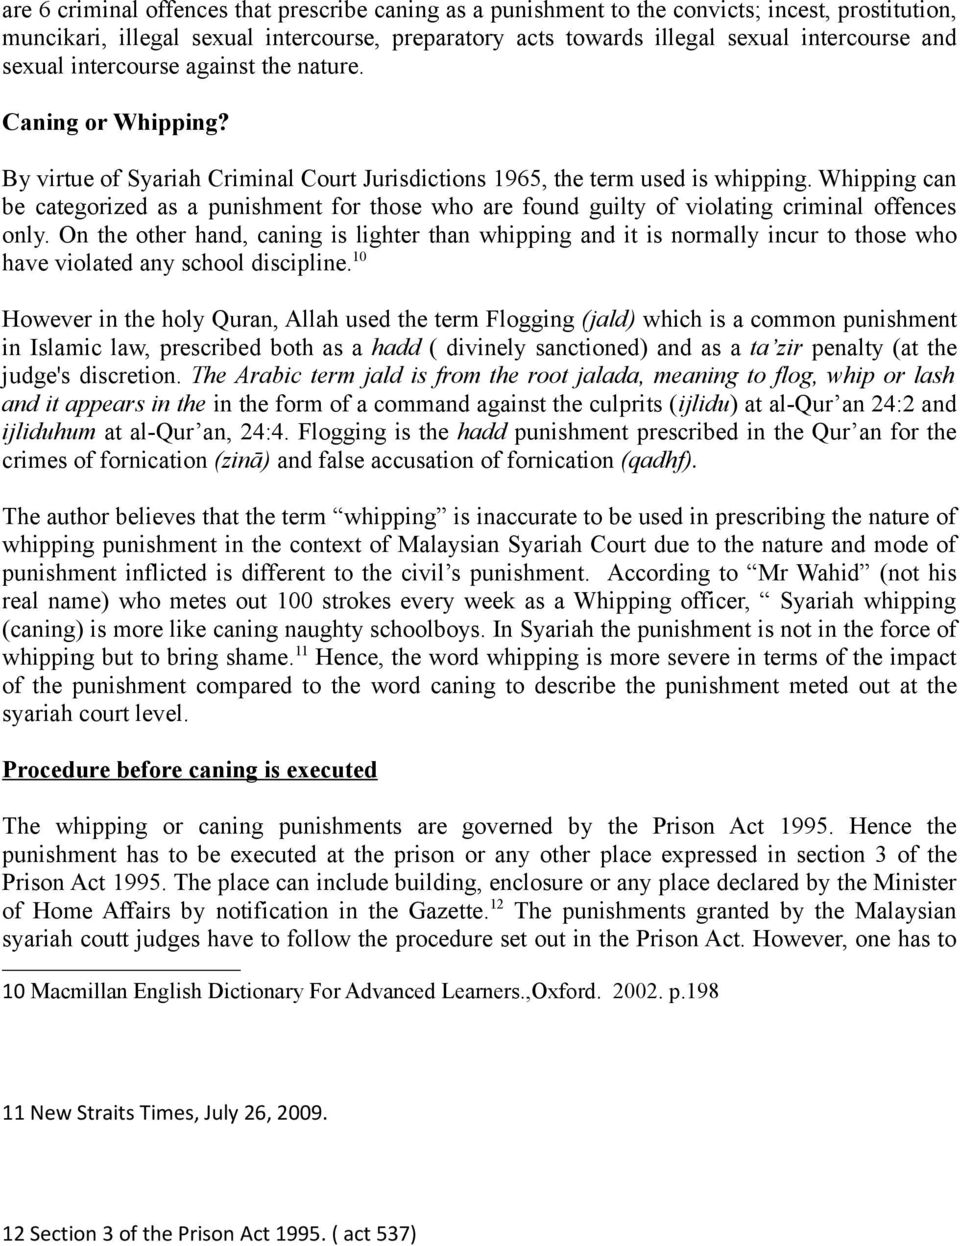 Caning: Shariah and Civil law perspectives  Ramizah Wan